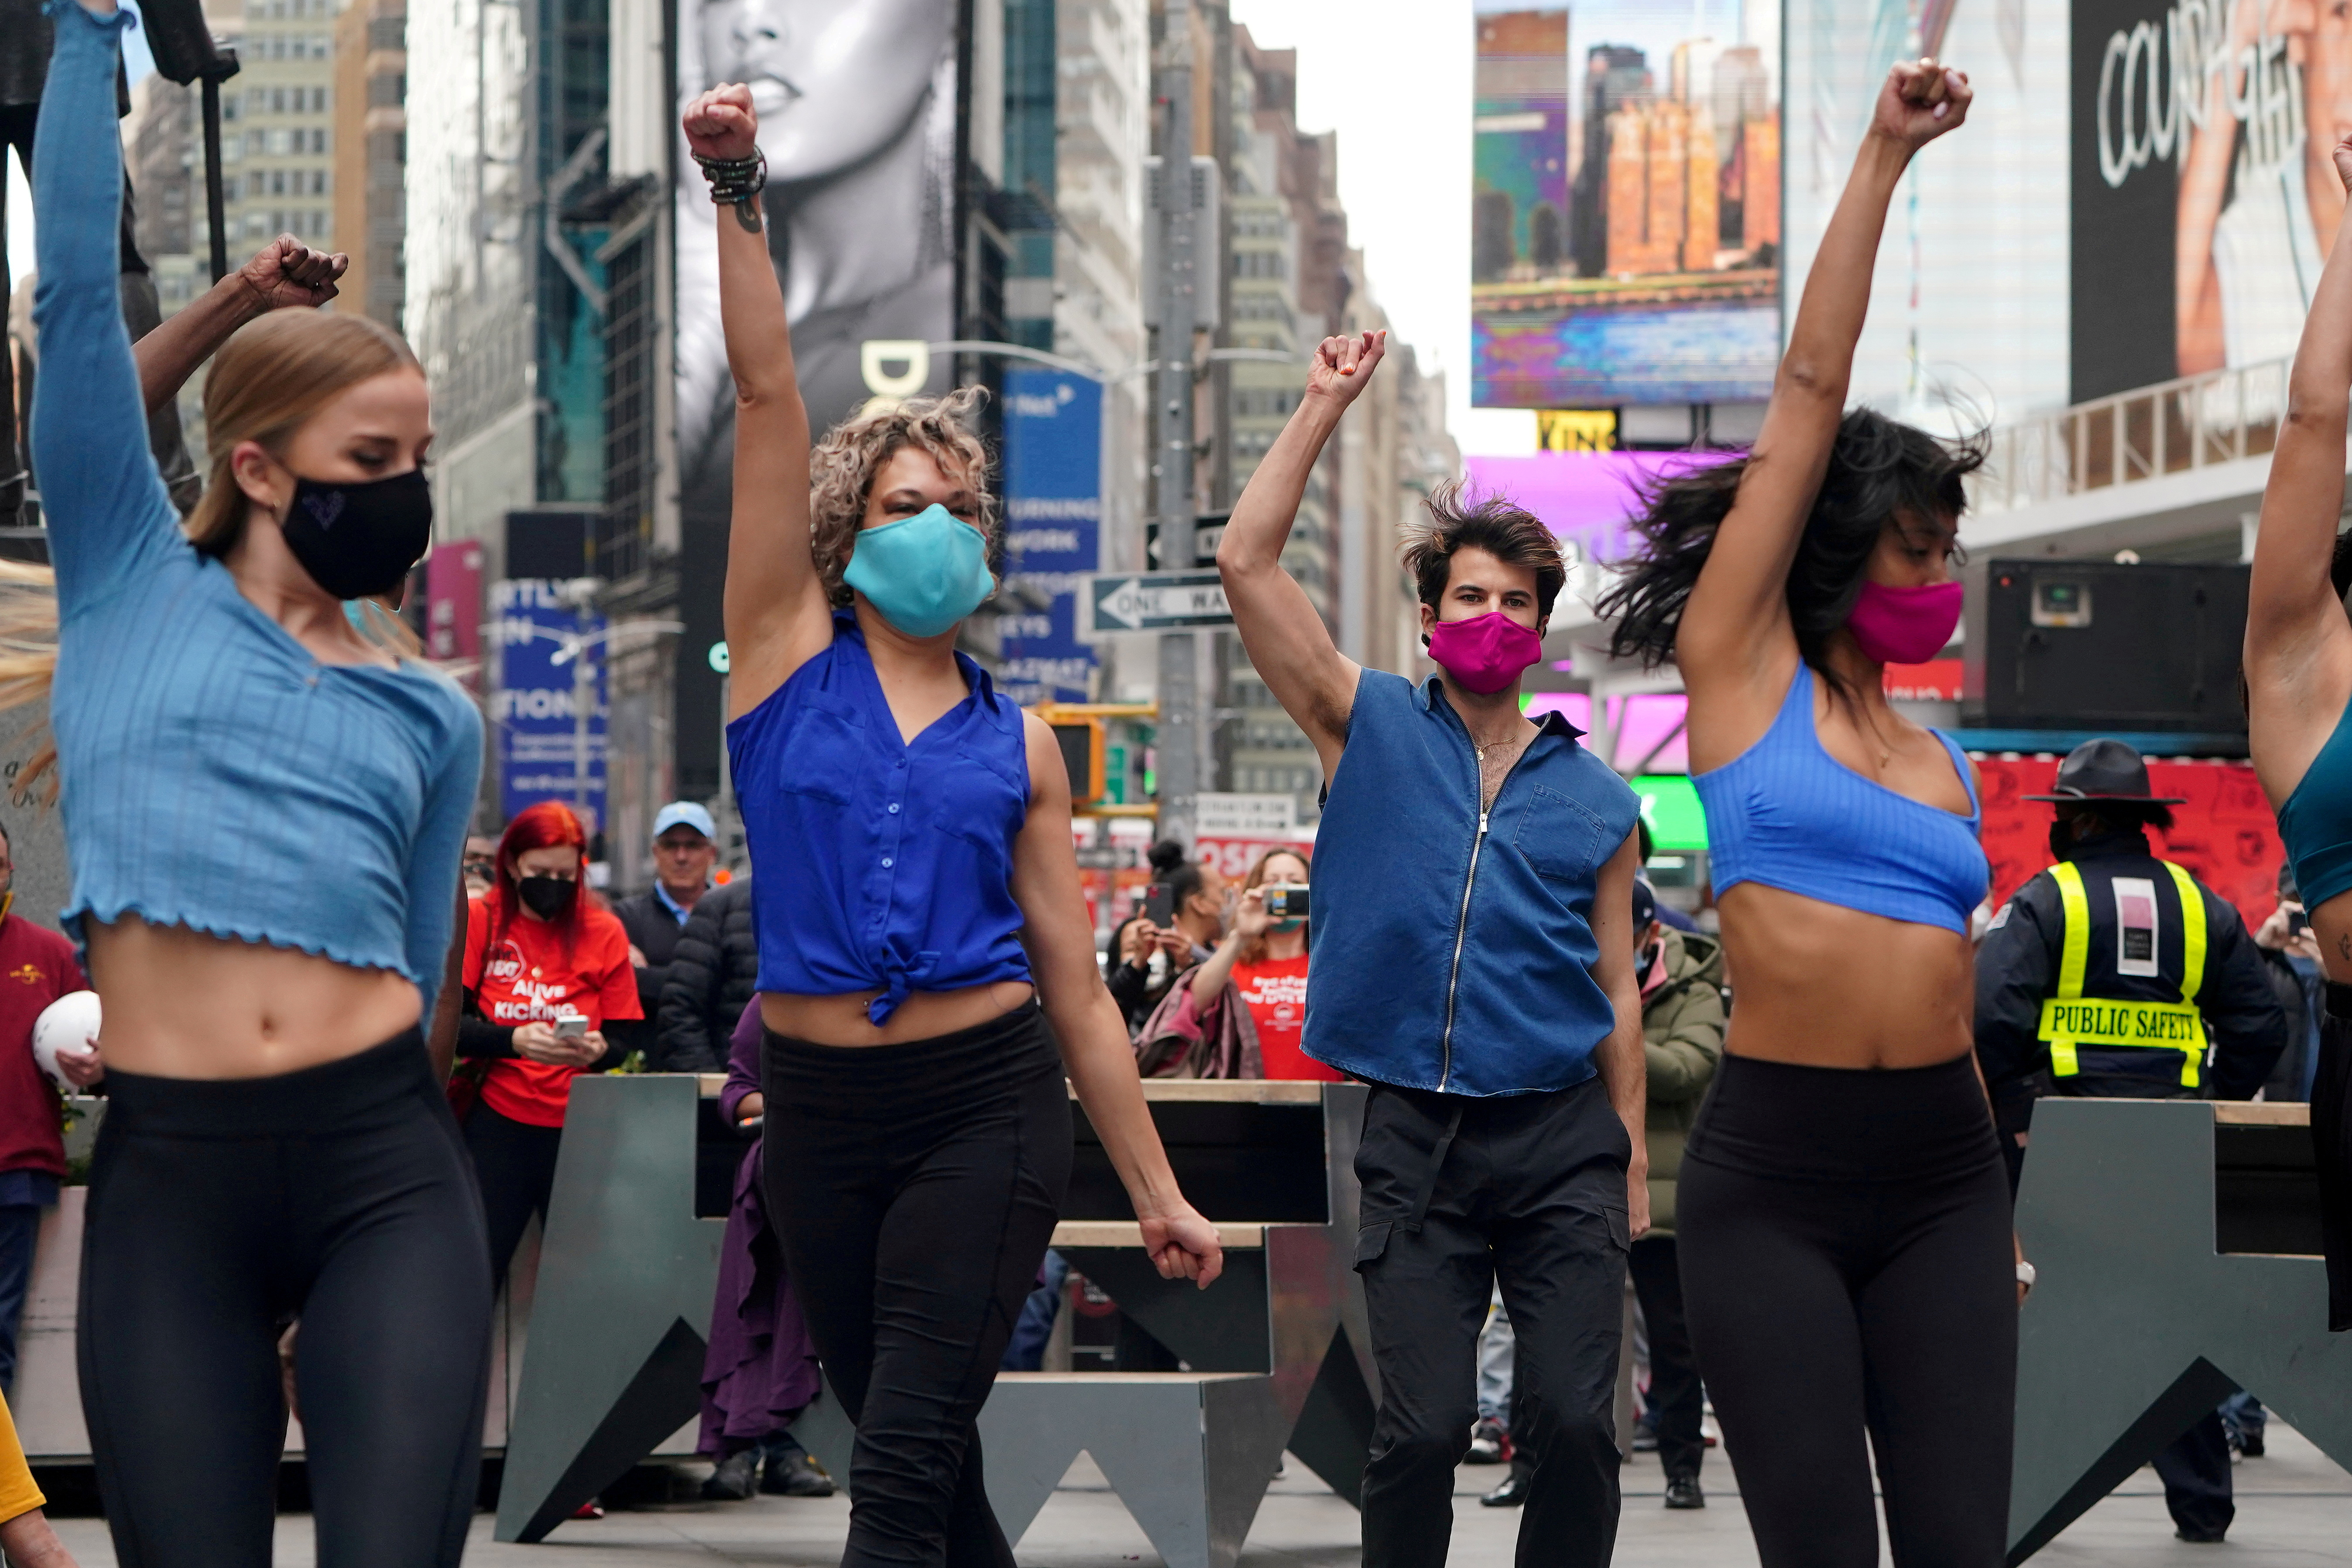 Performers take part in a pop up Broadway performance in anticipation of Broadway reopening in Times Square amid the coronavirus disease (COVID-19) pandemic in the Manhattan borough of New York City, New York, U.S., March 12, 2021. REUTERS/Carlo Allegri